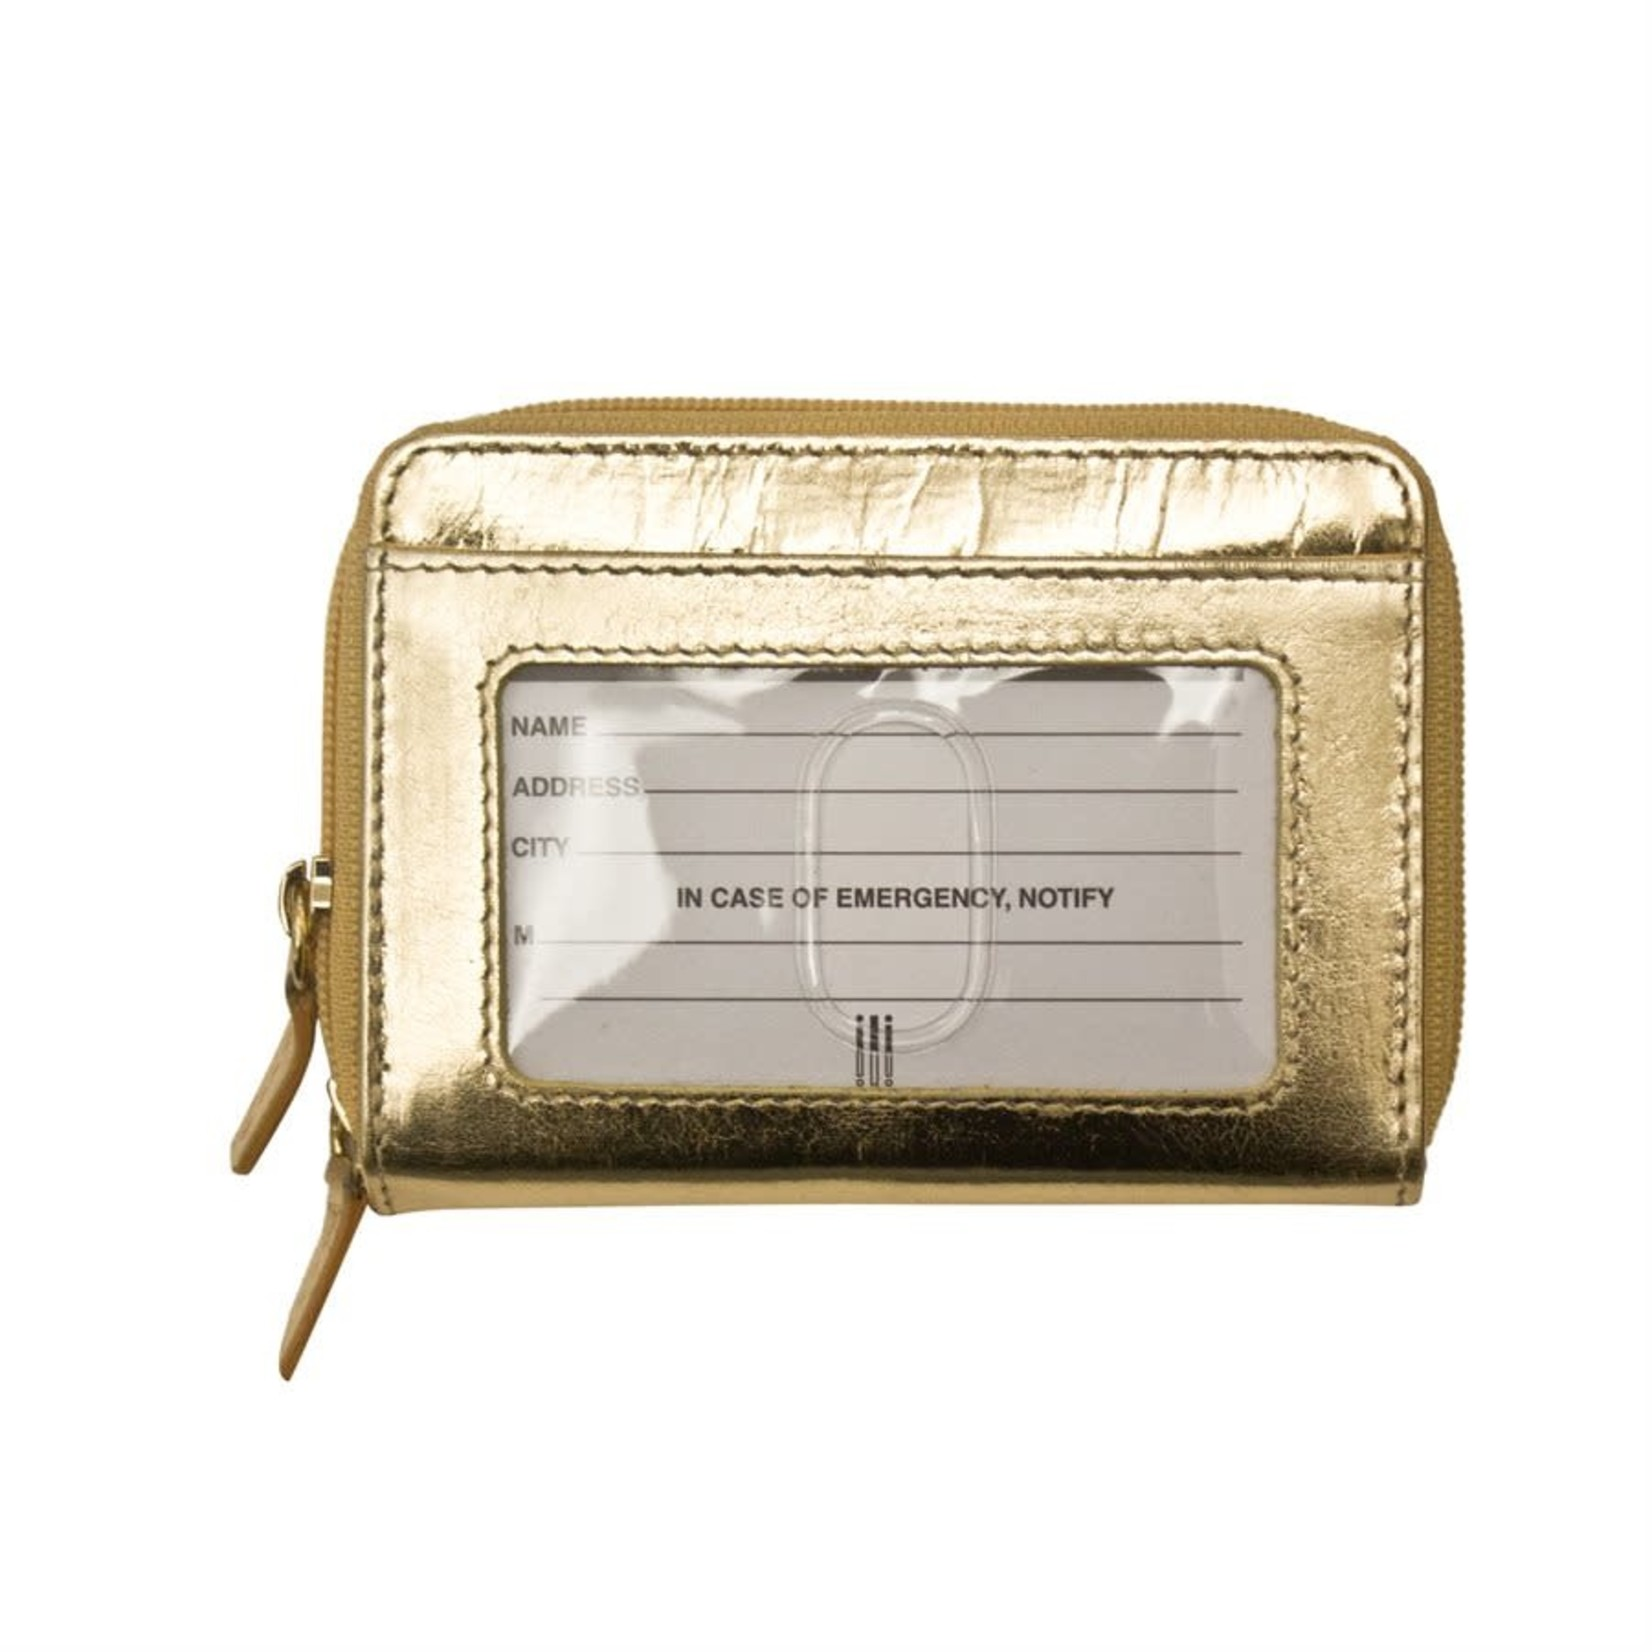 Leather Handbags and Accessories 6714 Gold - RFID Double Zip Accordion Card Holder